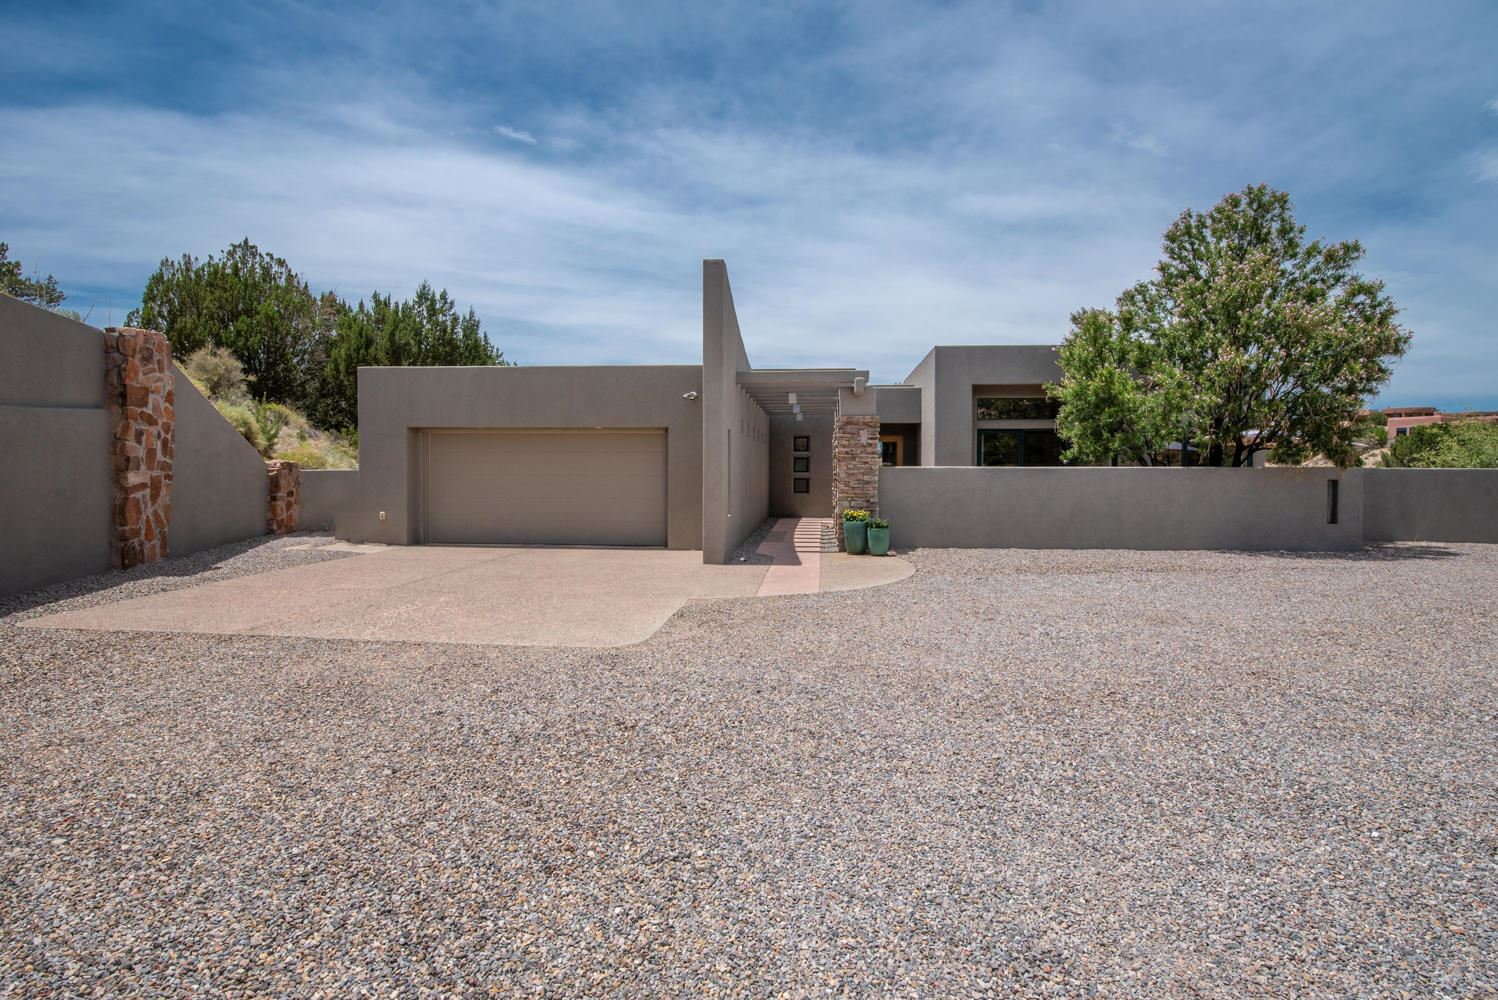 Photo of 115 VISTA MONTANA Loop, Placitas, NM 87043 (MLS # 971525)